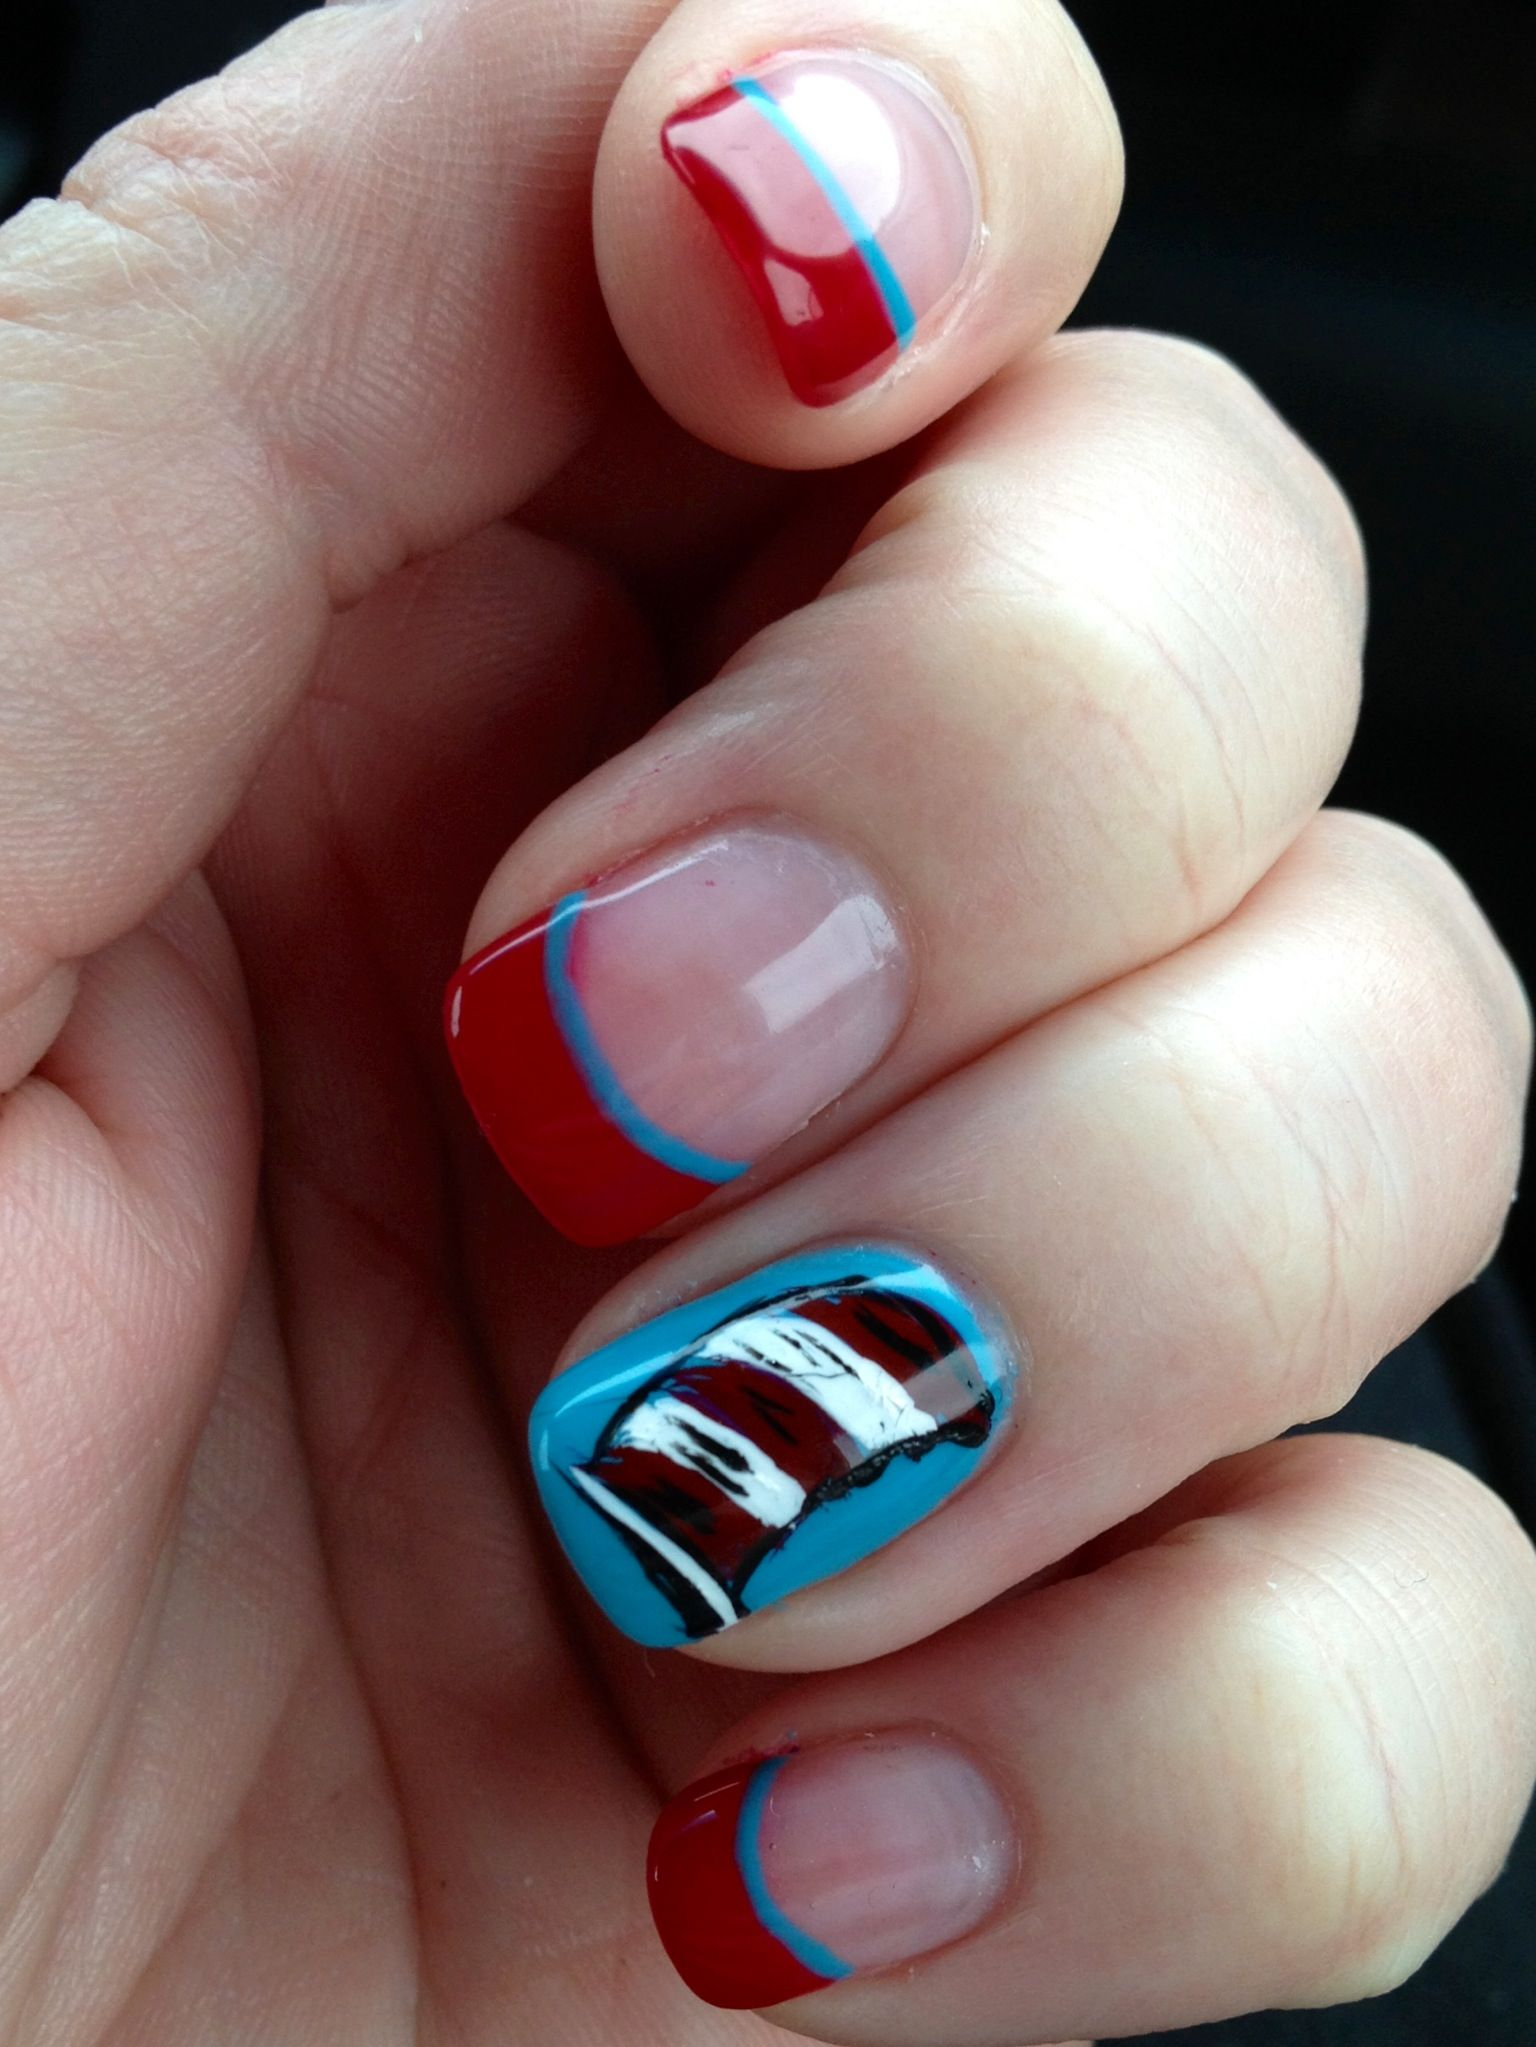 Dr Seuss Nail Design In Honor Of His Birthday And Read Across America Love